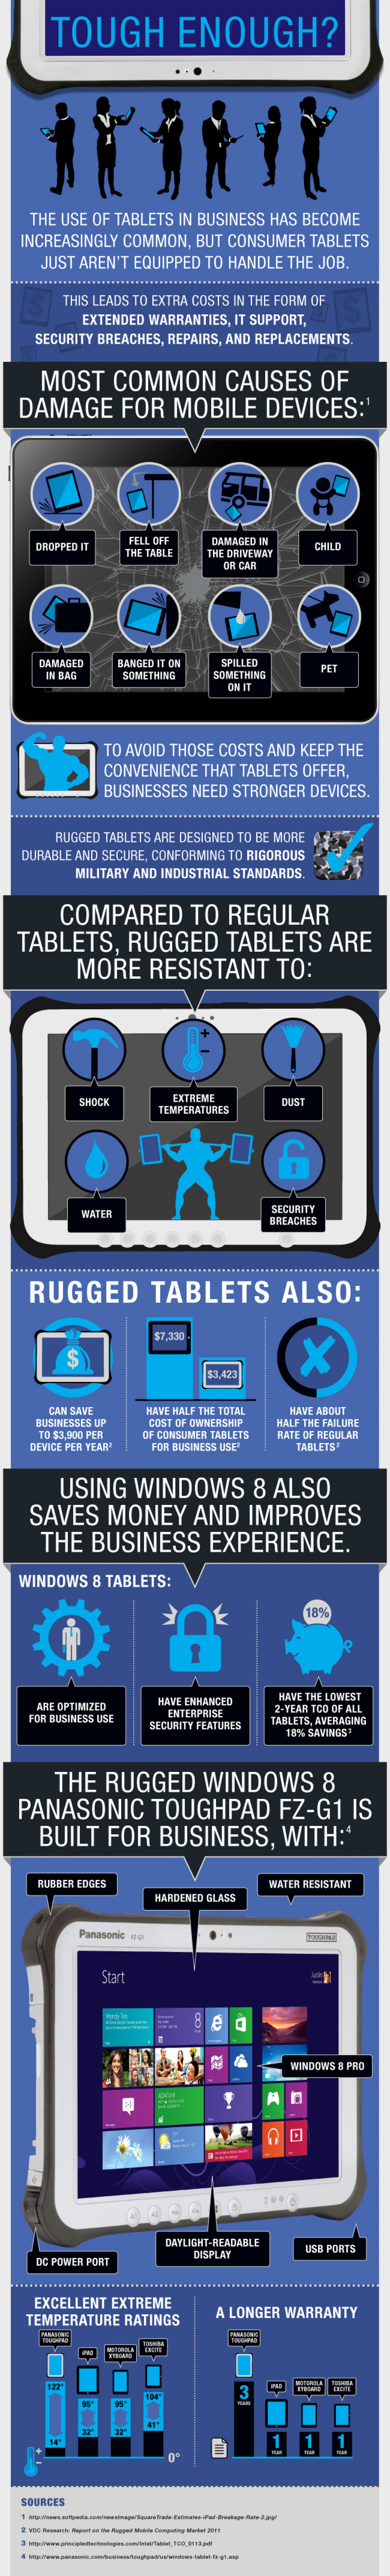 Tough Enough? Infographic